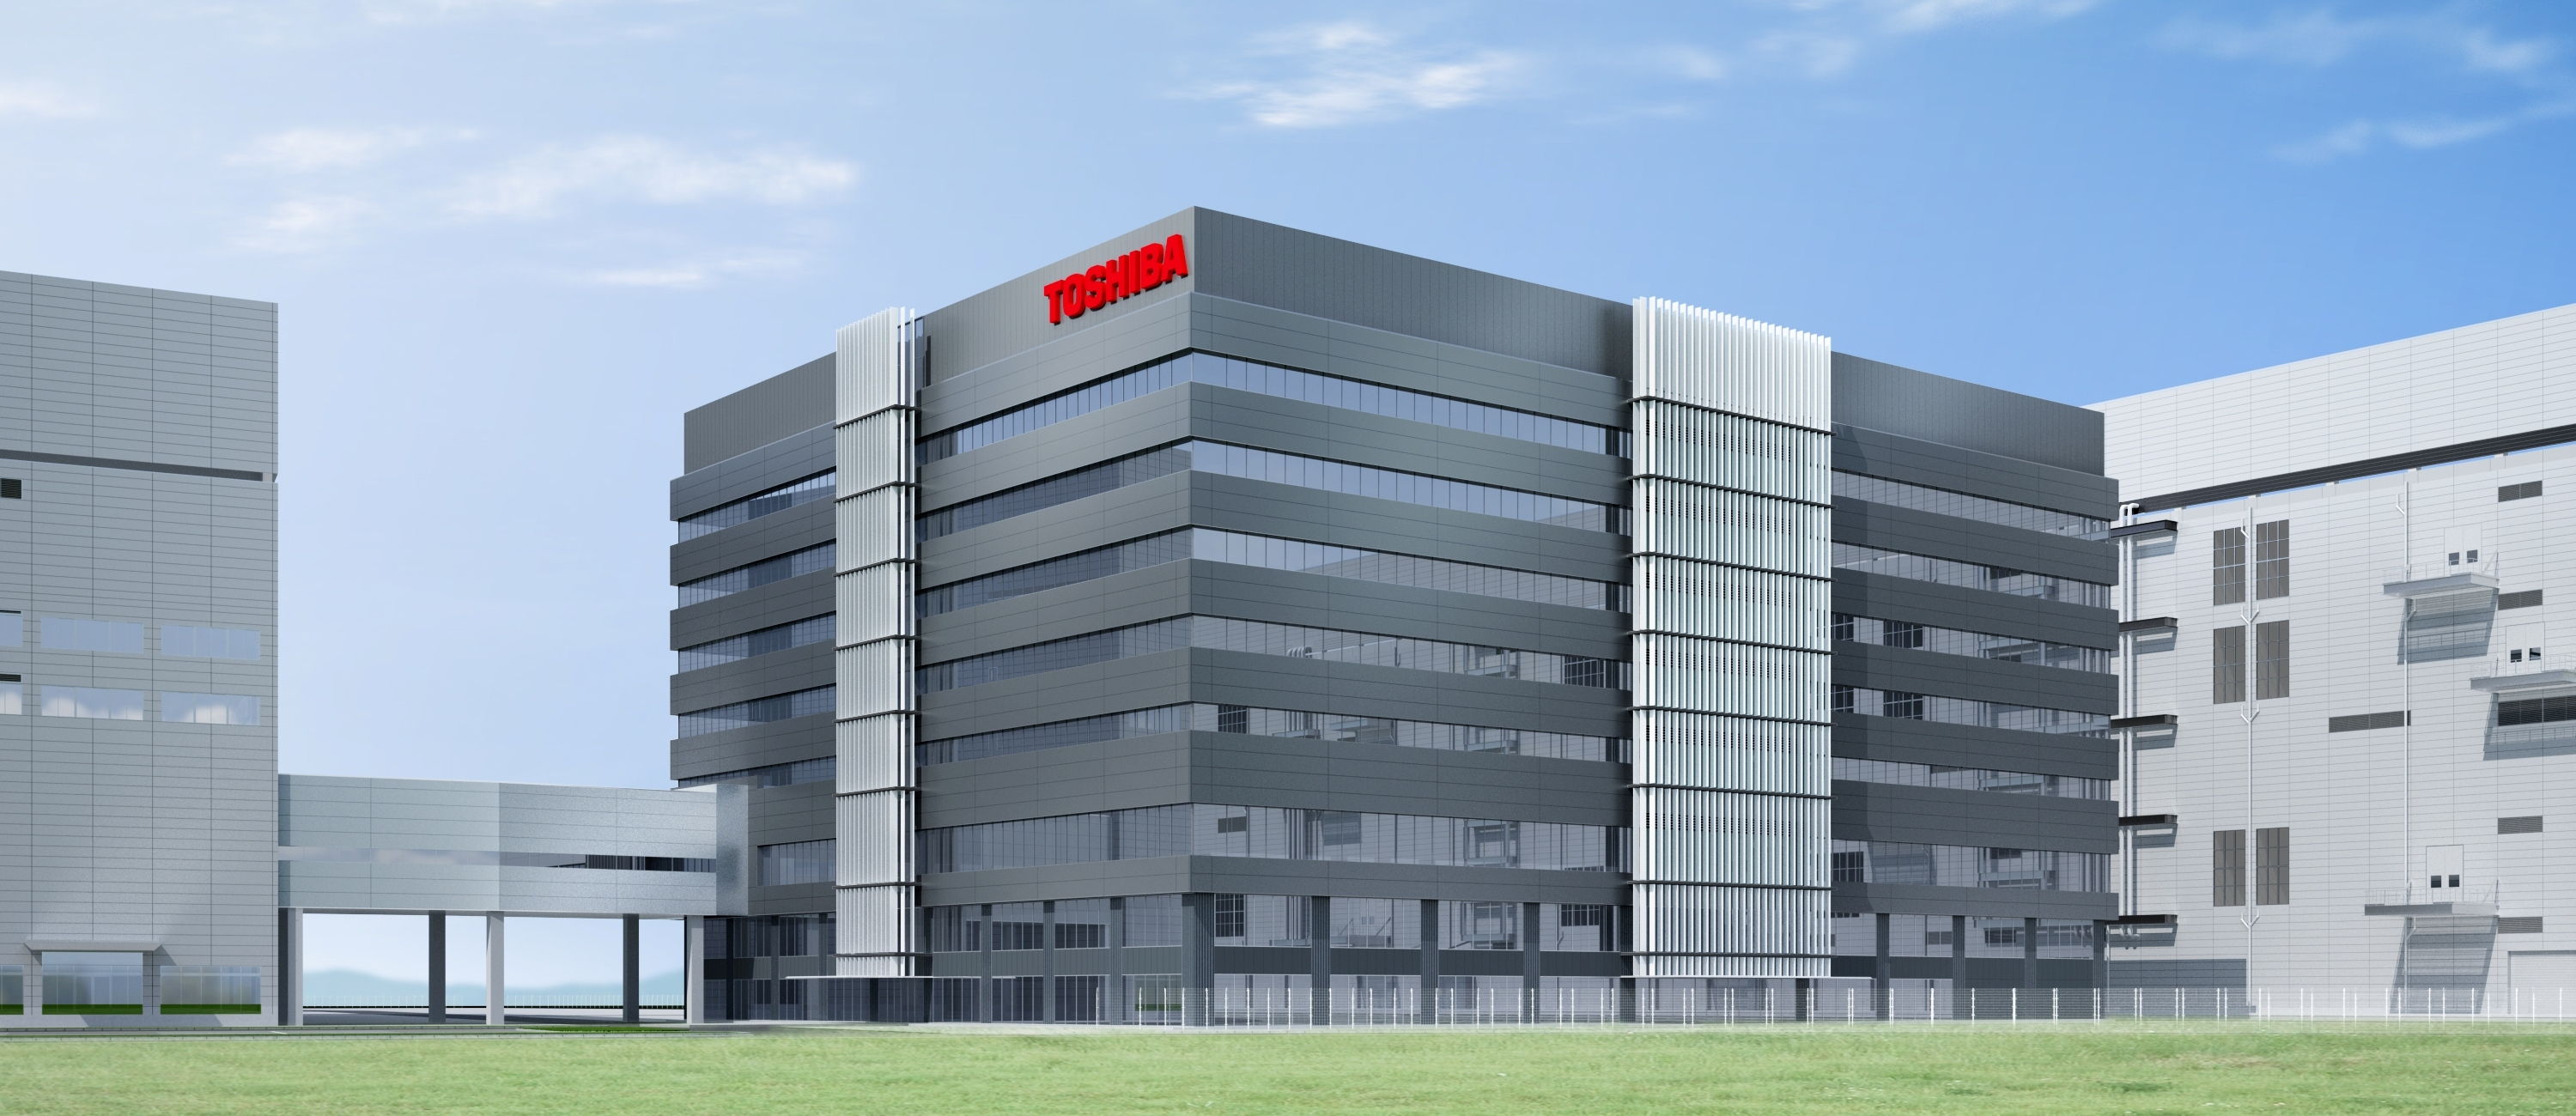 Artist's impression of the Memory R&D Center, Yokkaichi Operations (Graphic: Business Wire)